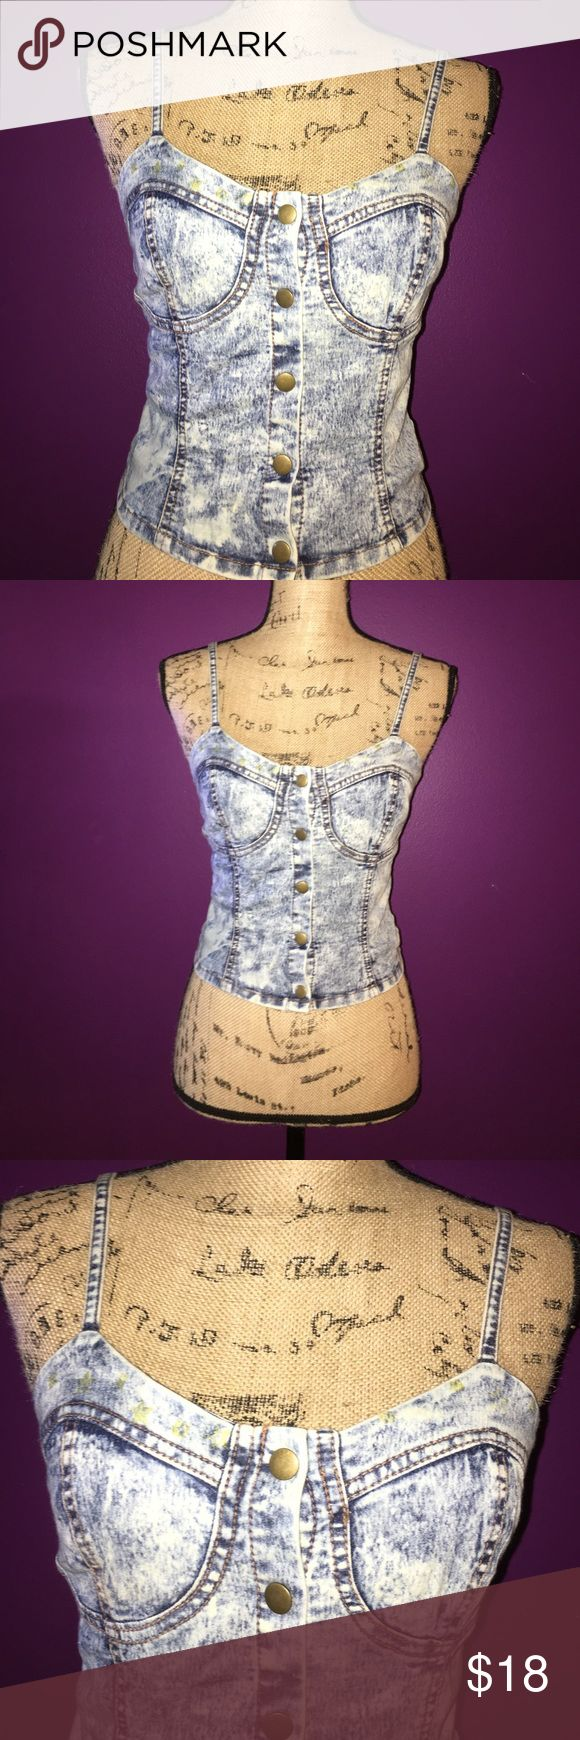 Acid washed Jean Crop Top Acid washed Jean Crop Top button up size medium Tops Crop Tops